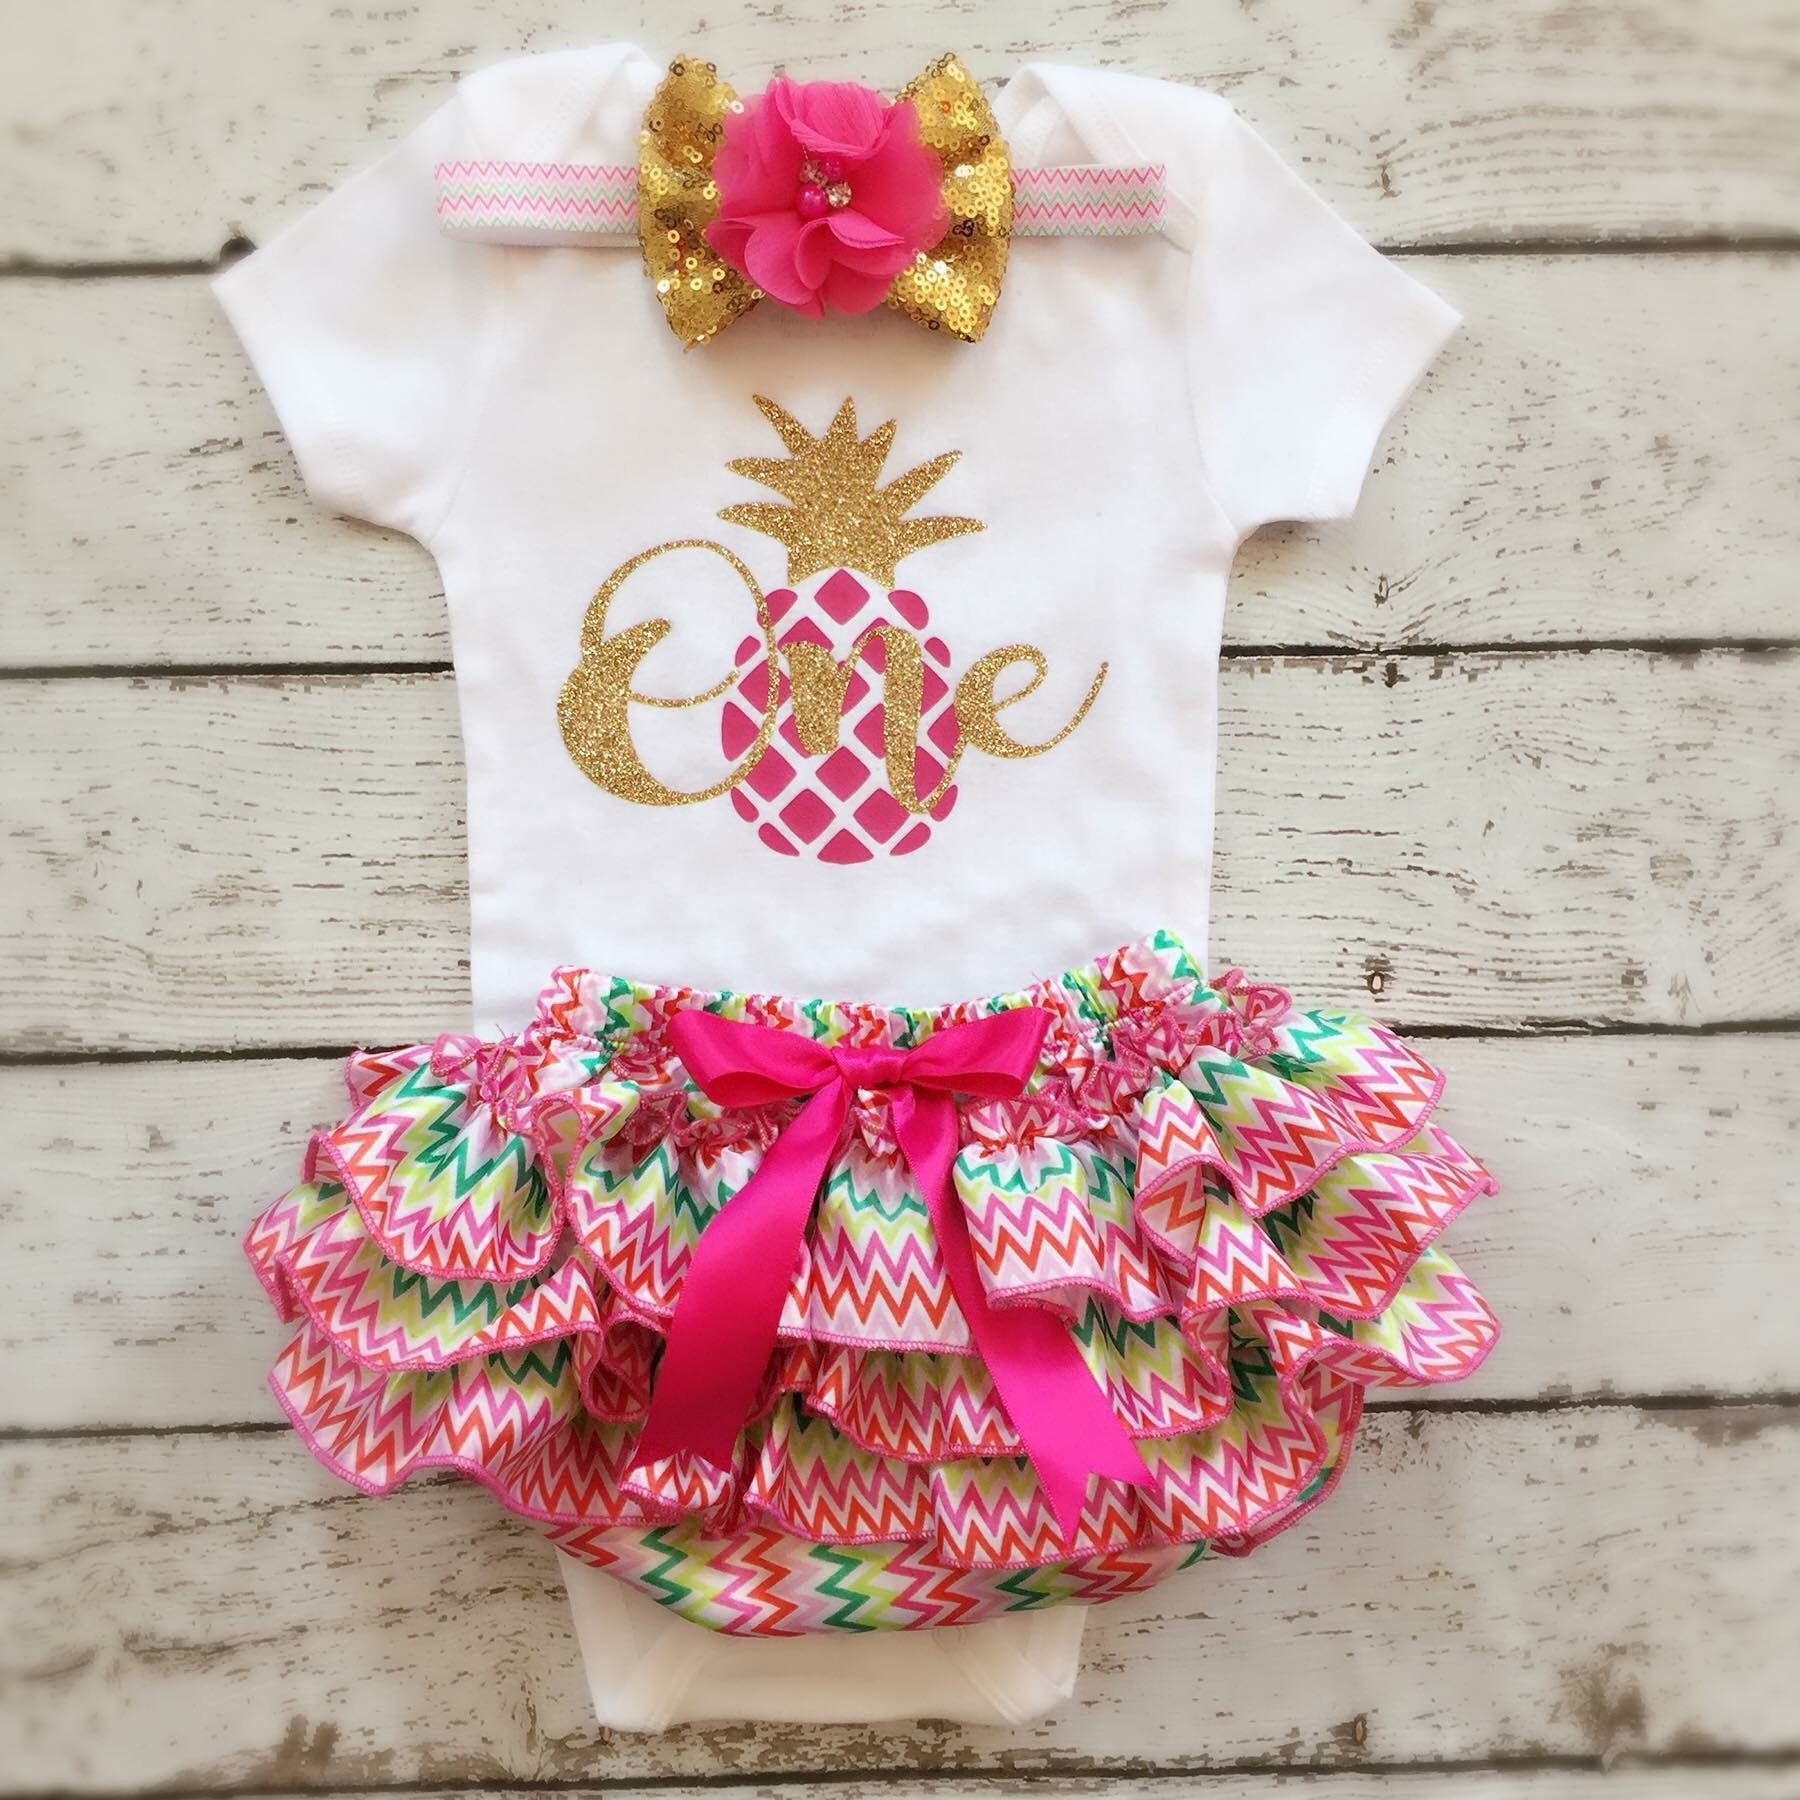 c196a6dc45ae Pineapple 1st Birthday- First Birthday outfit Hawaiian Summer Pineapple  Theme Birthday outfit